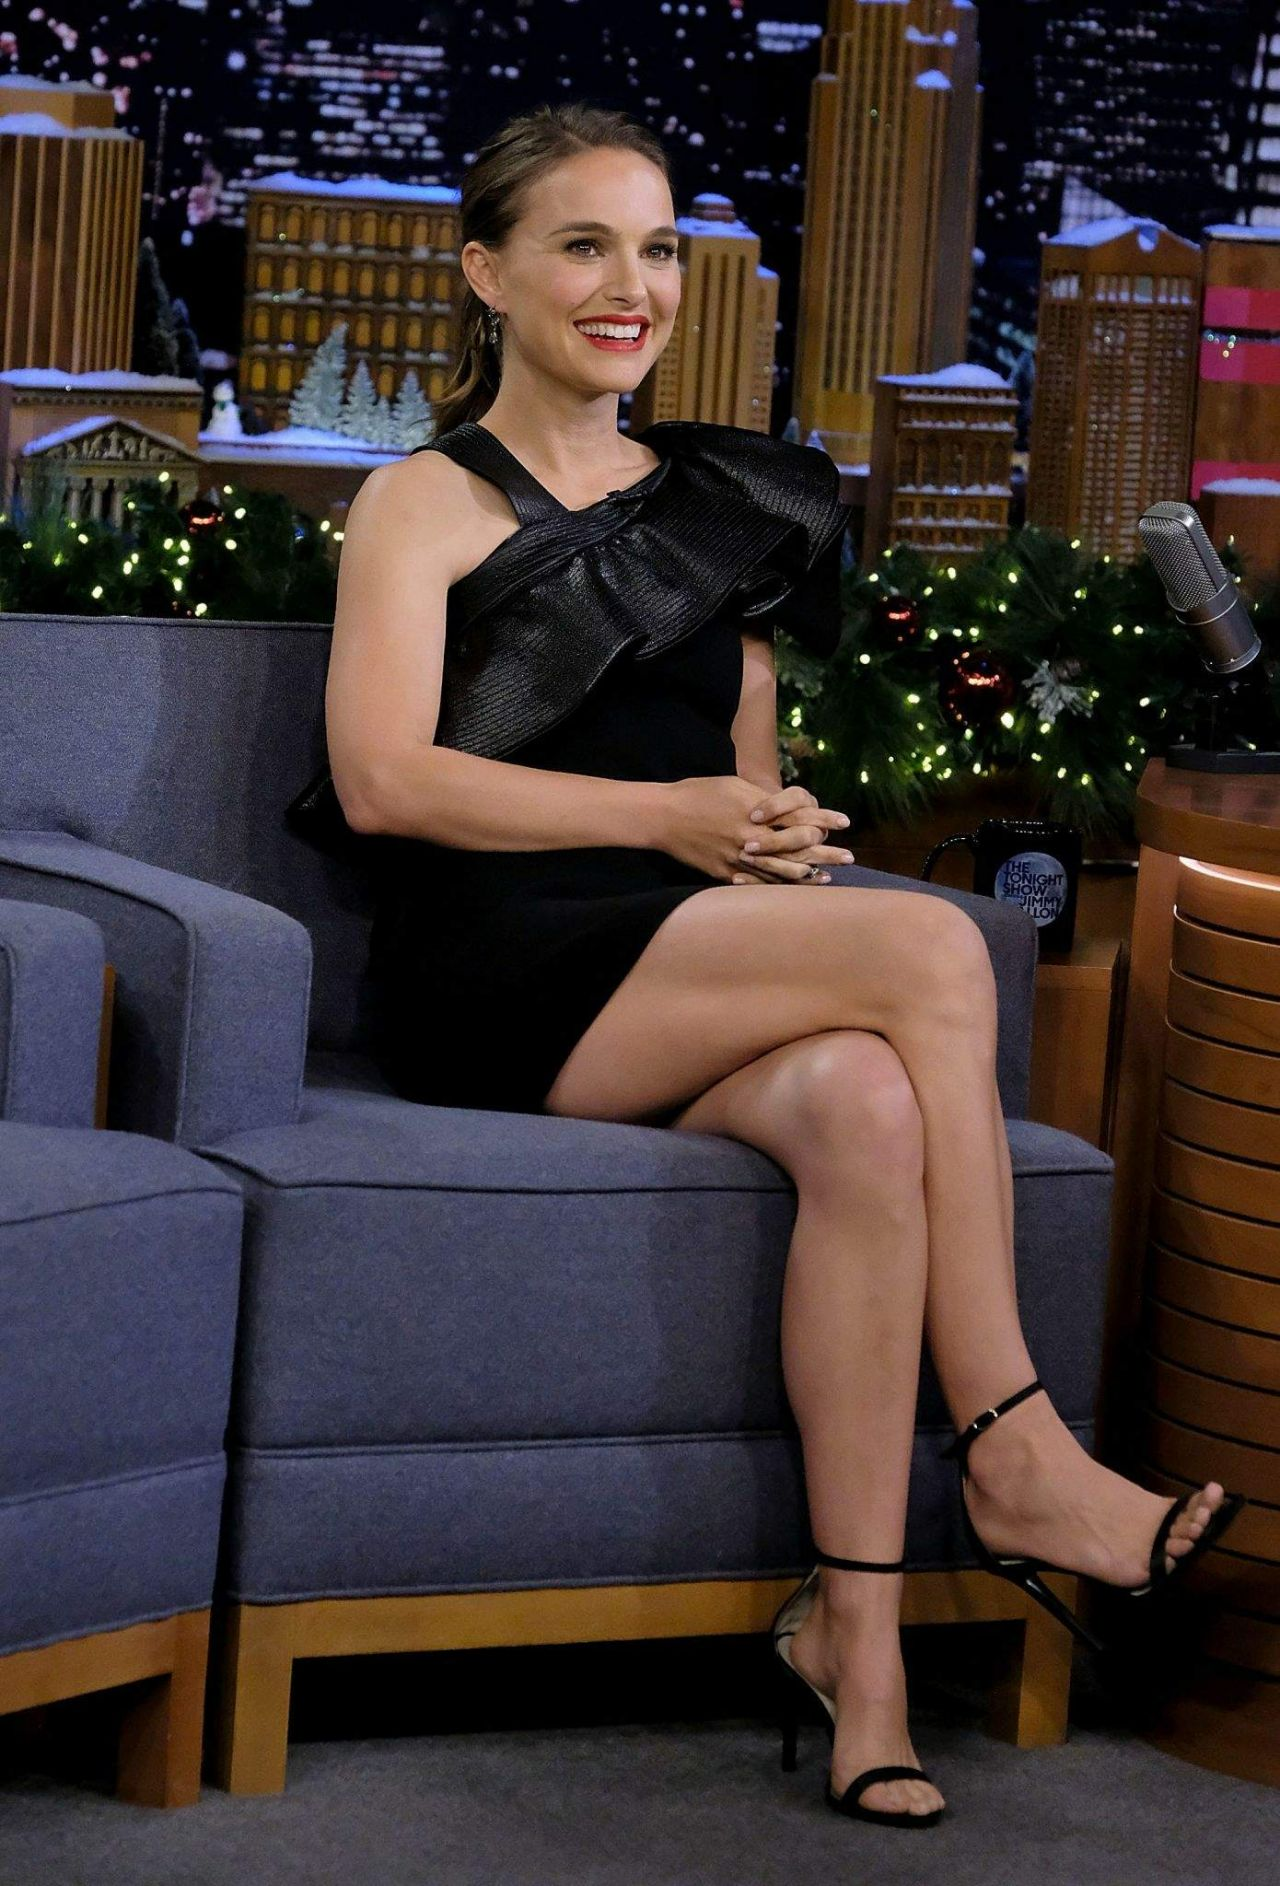 Natalie Portman - Appeared on The Tonight Show Starring